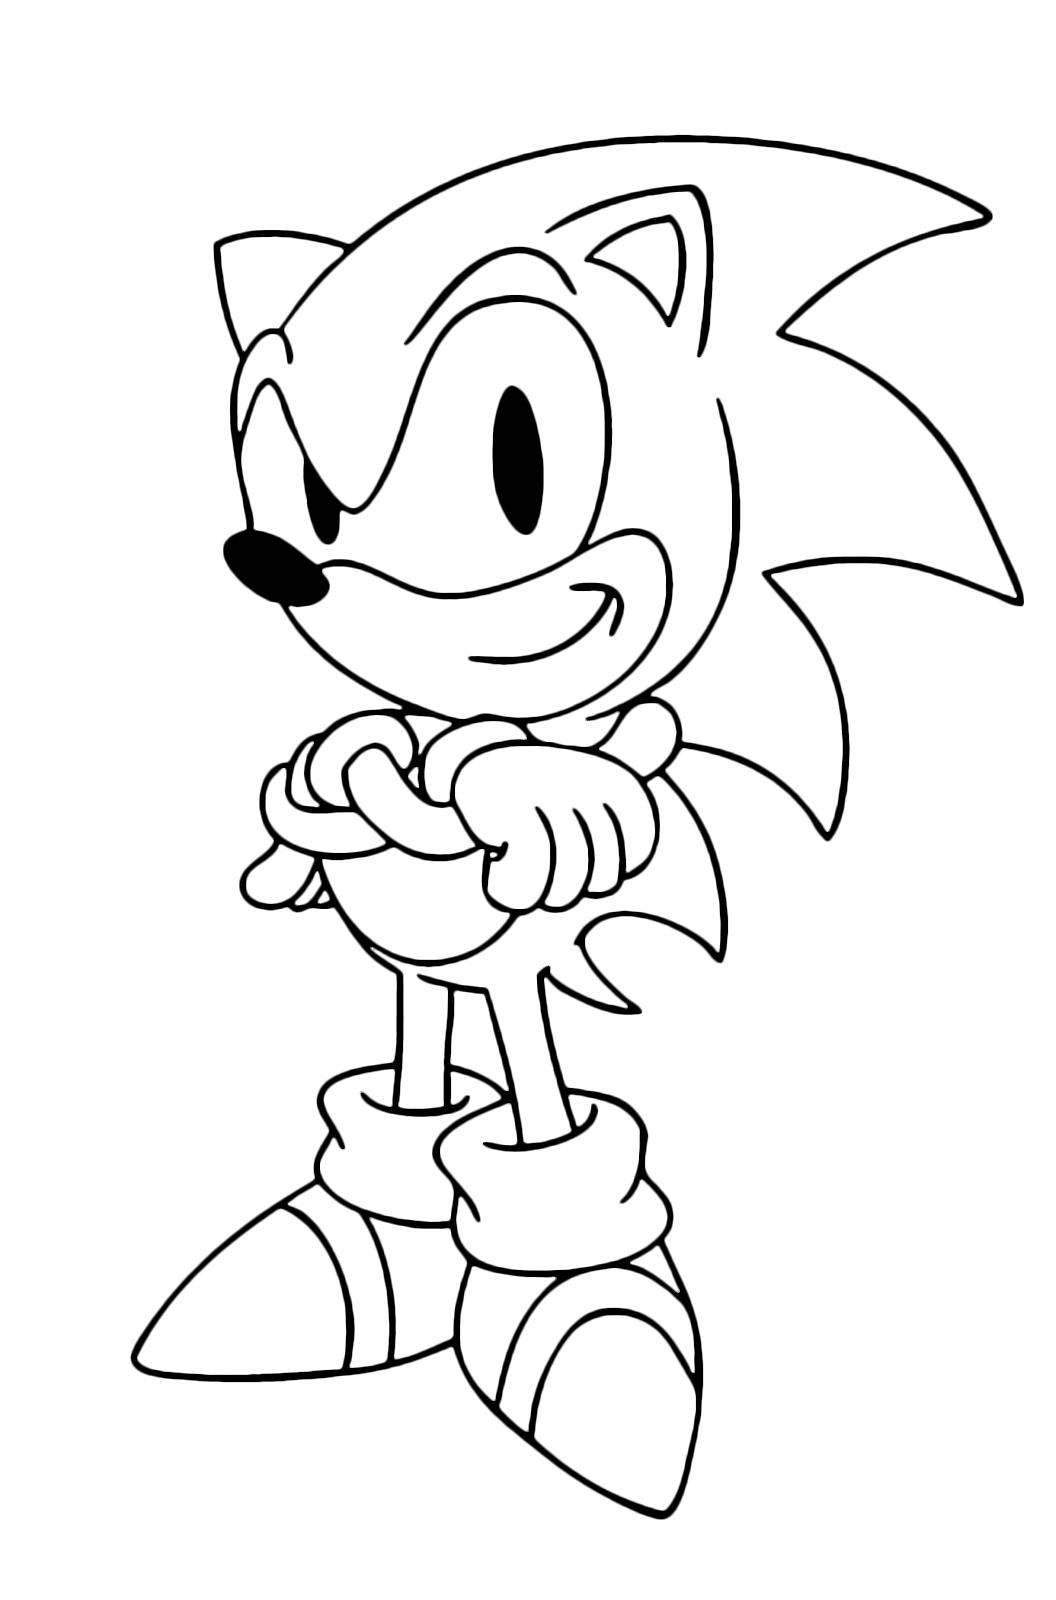 quot Sonic Boom quot coloring pages